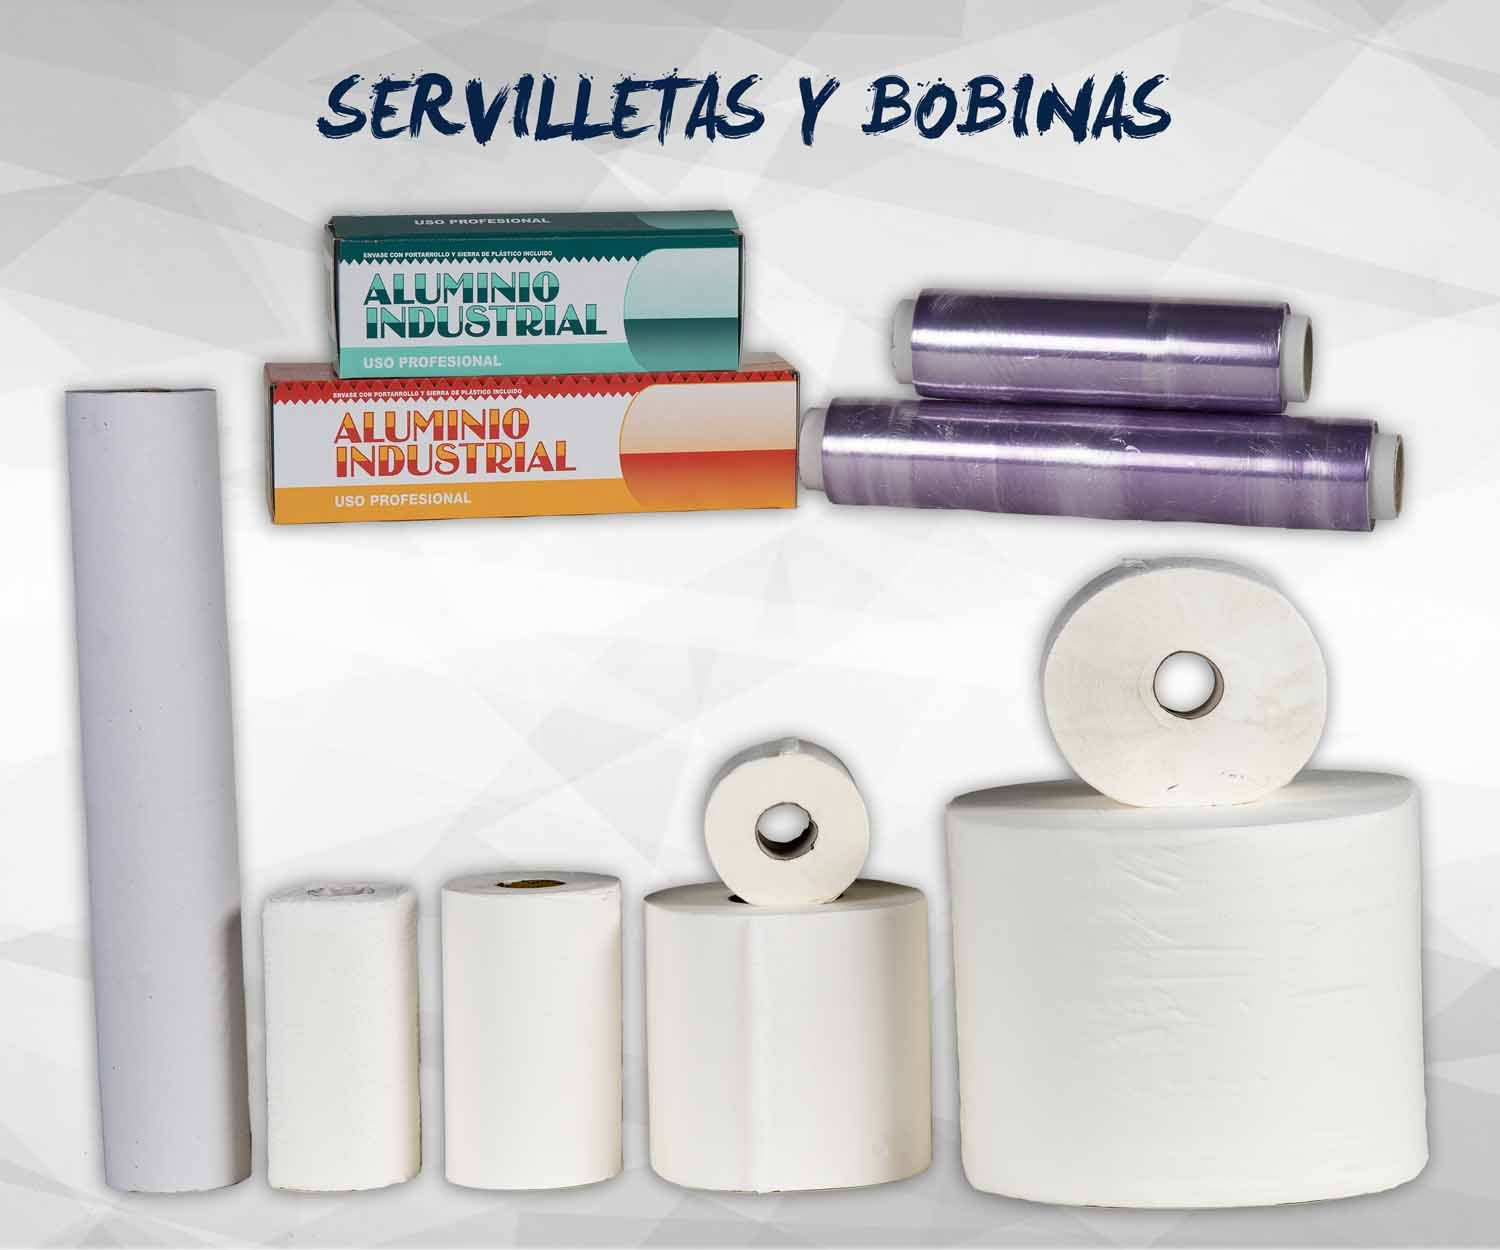 Papel y bobinas: Productos de Exclusivas San Luis